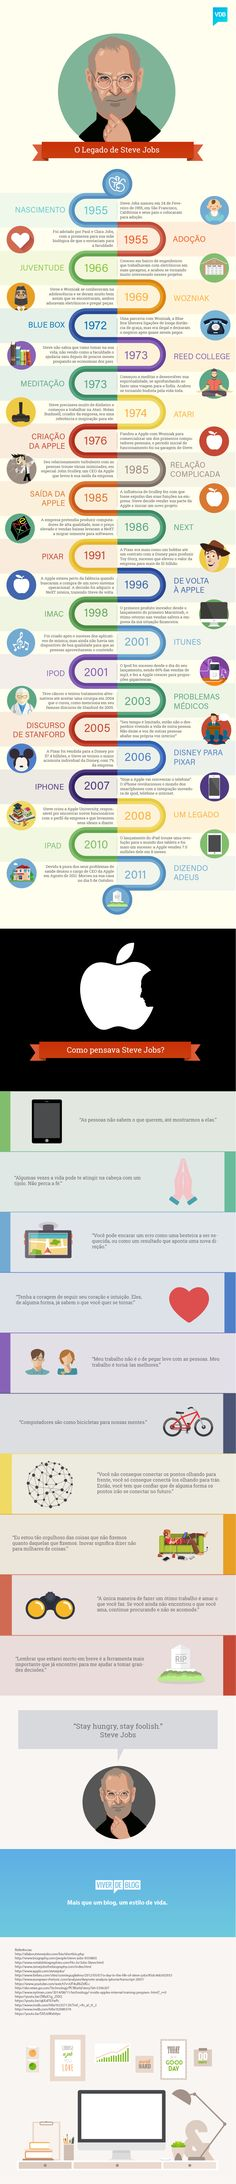 [Infográfico] Steve Jobs E O Legado Que Mudou O Mundo Steve Jobs, Experiment, Computer Jobs, Steve Wozniak, Old Computers, Design Thinking, Web Design, Design Strategy, Study Tips